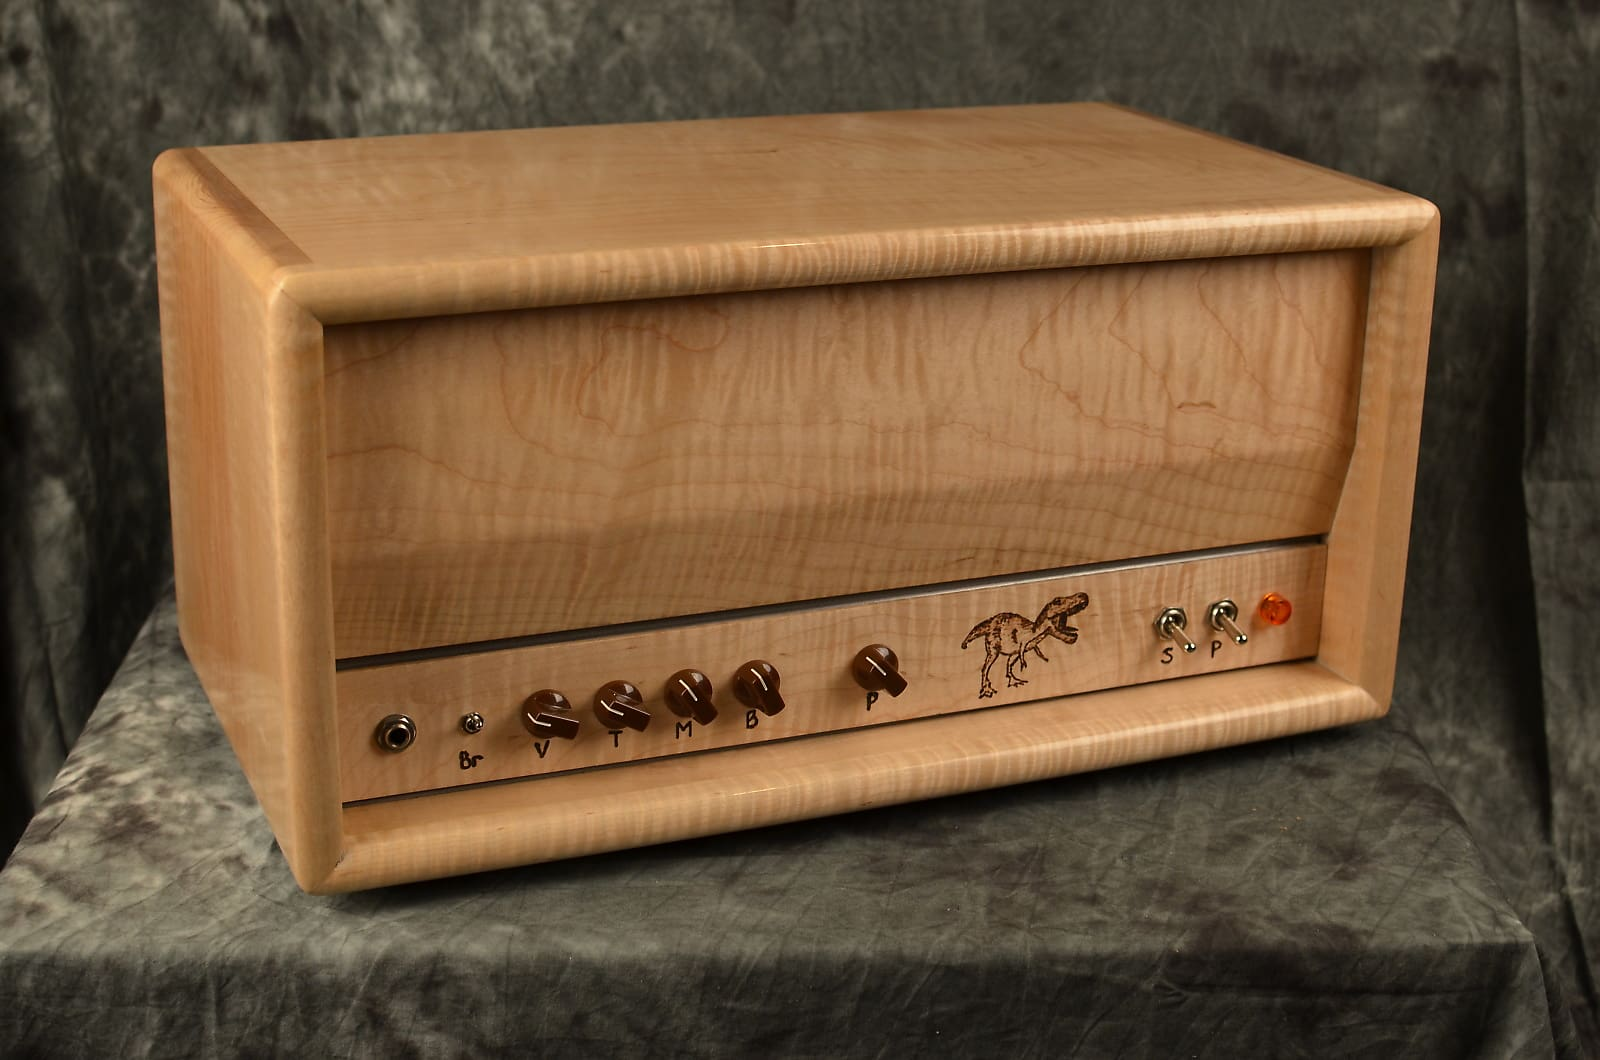 Deluxe Amplification Handwired TW Express Clone Flame Maple